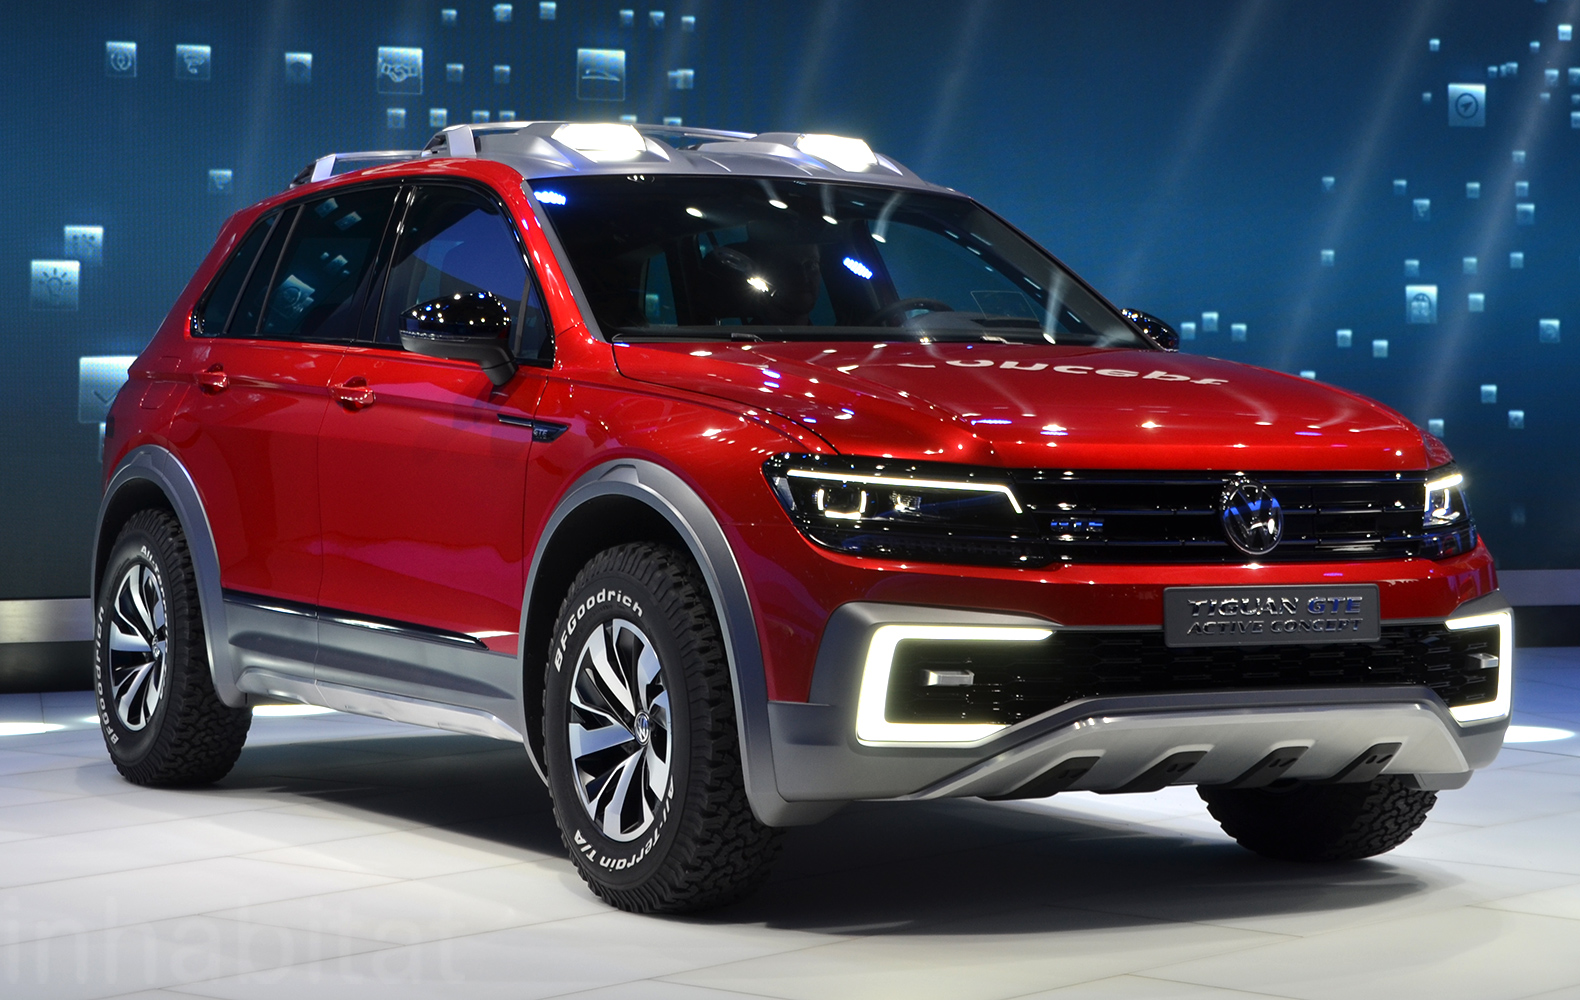 Vw Unveils Sweet New Plug In Hybrid Suv With 6 Driving Modes